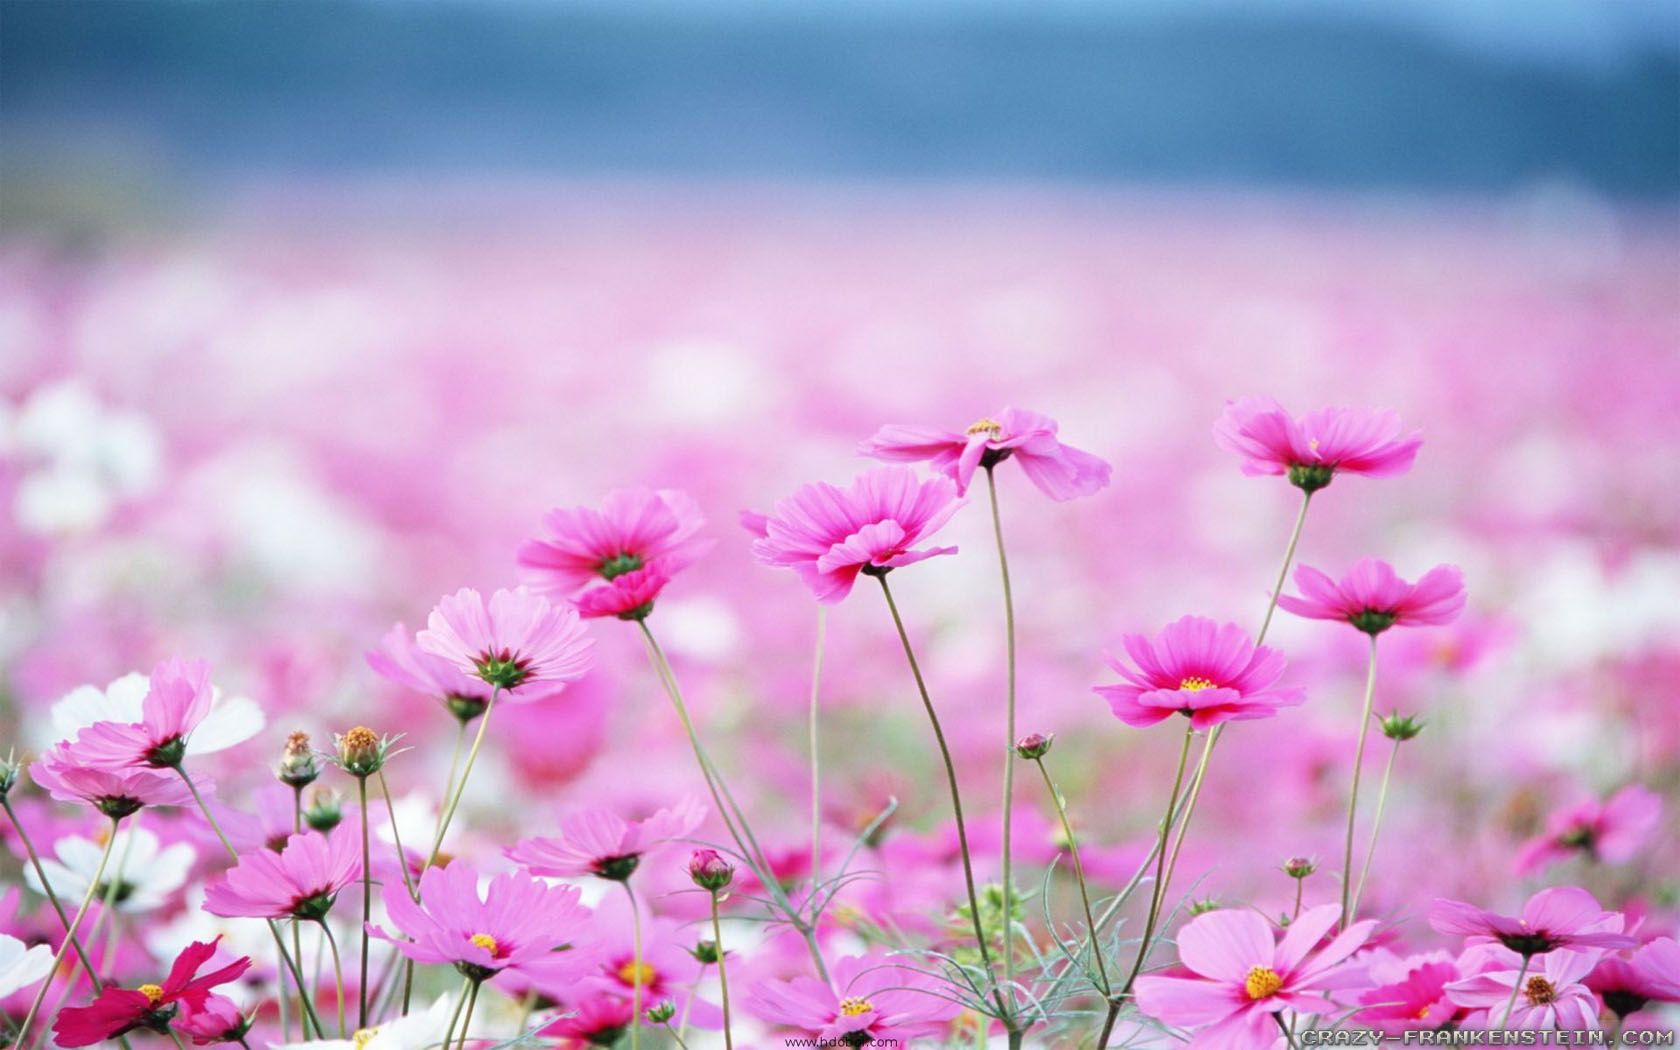 Flowers sceneries wallpapers android pinterest scenery and flowers sceneries wallpapers izmirmasajfo